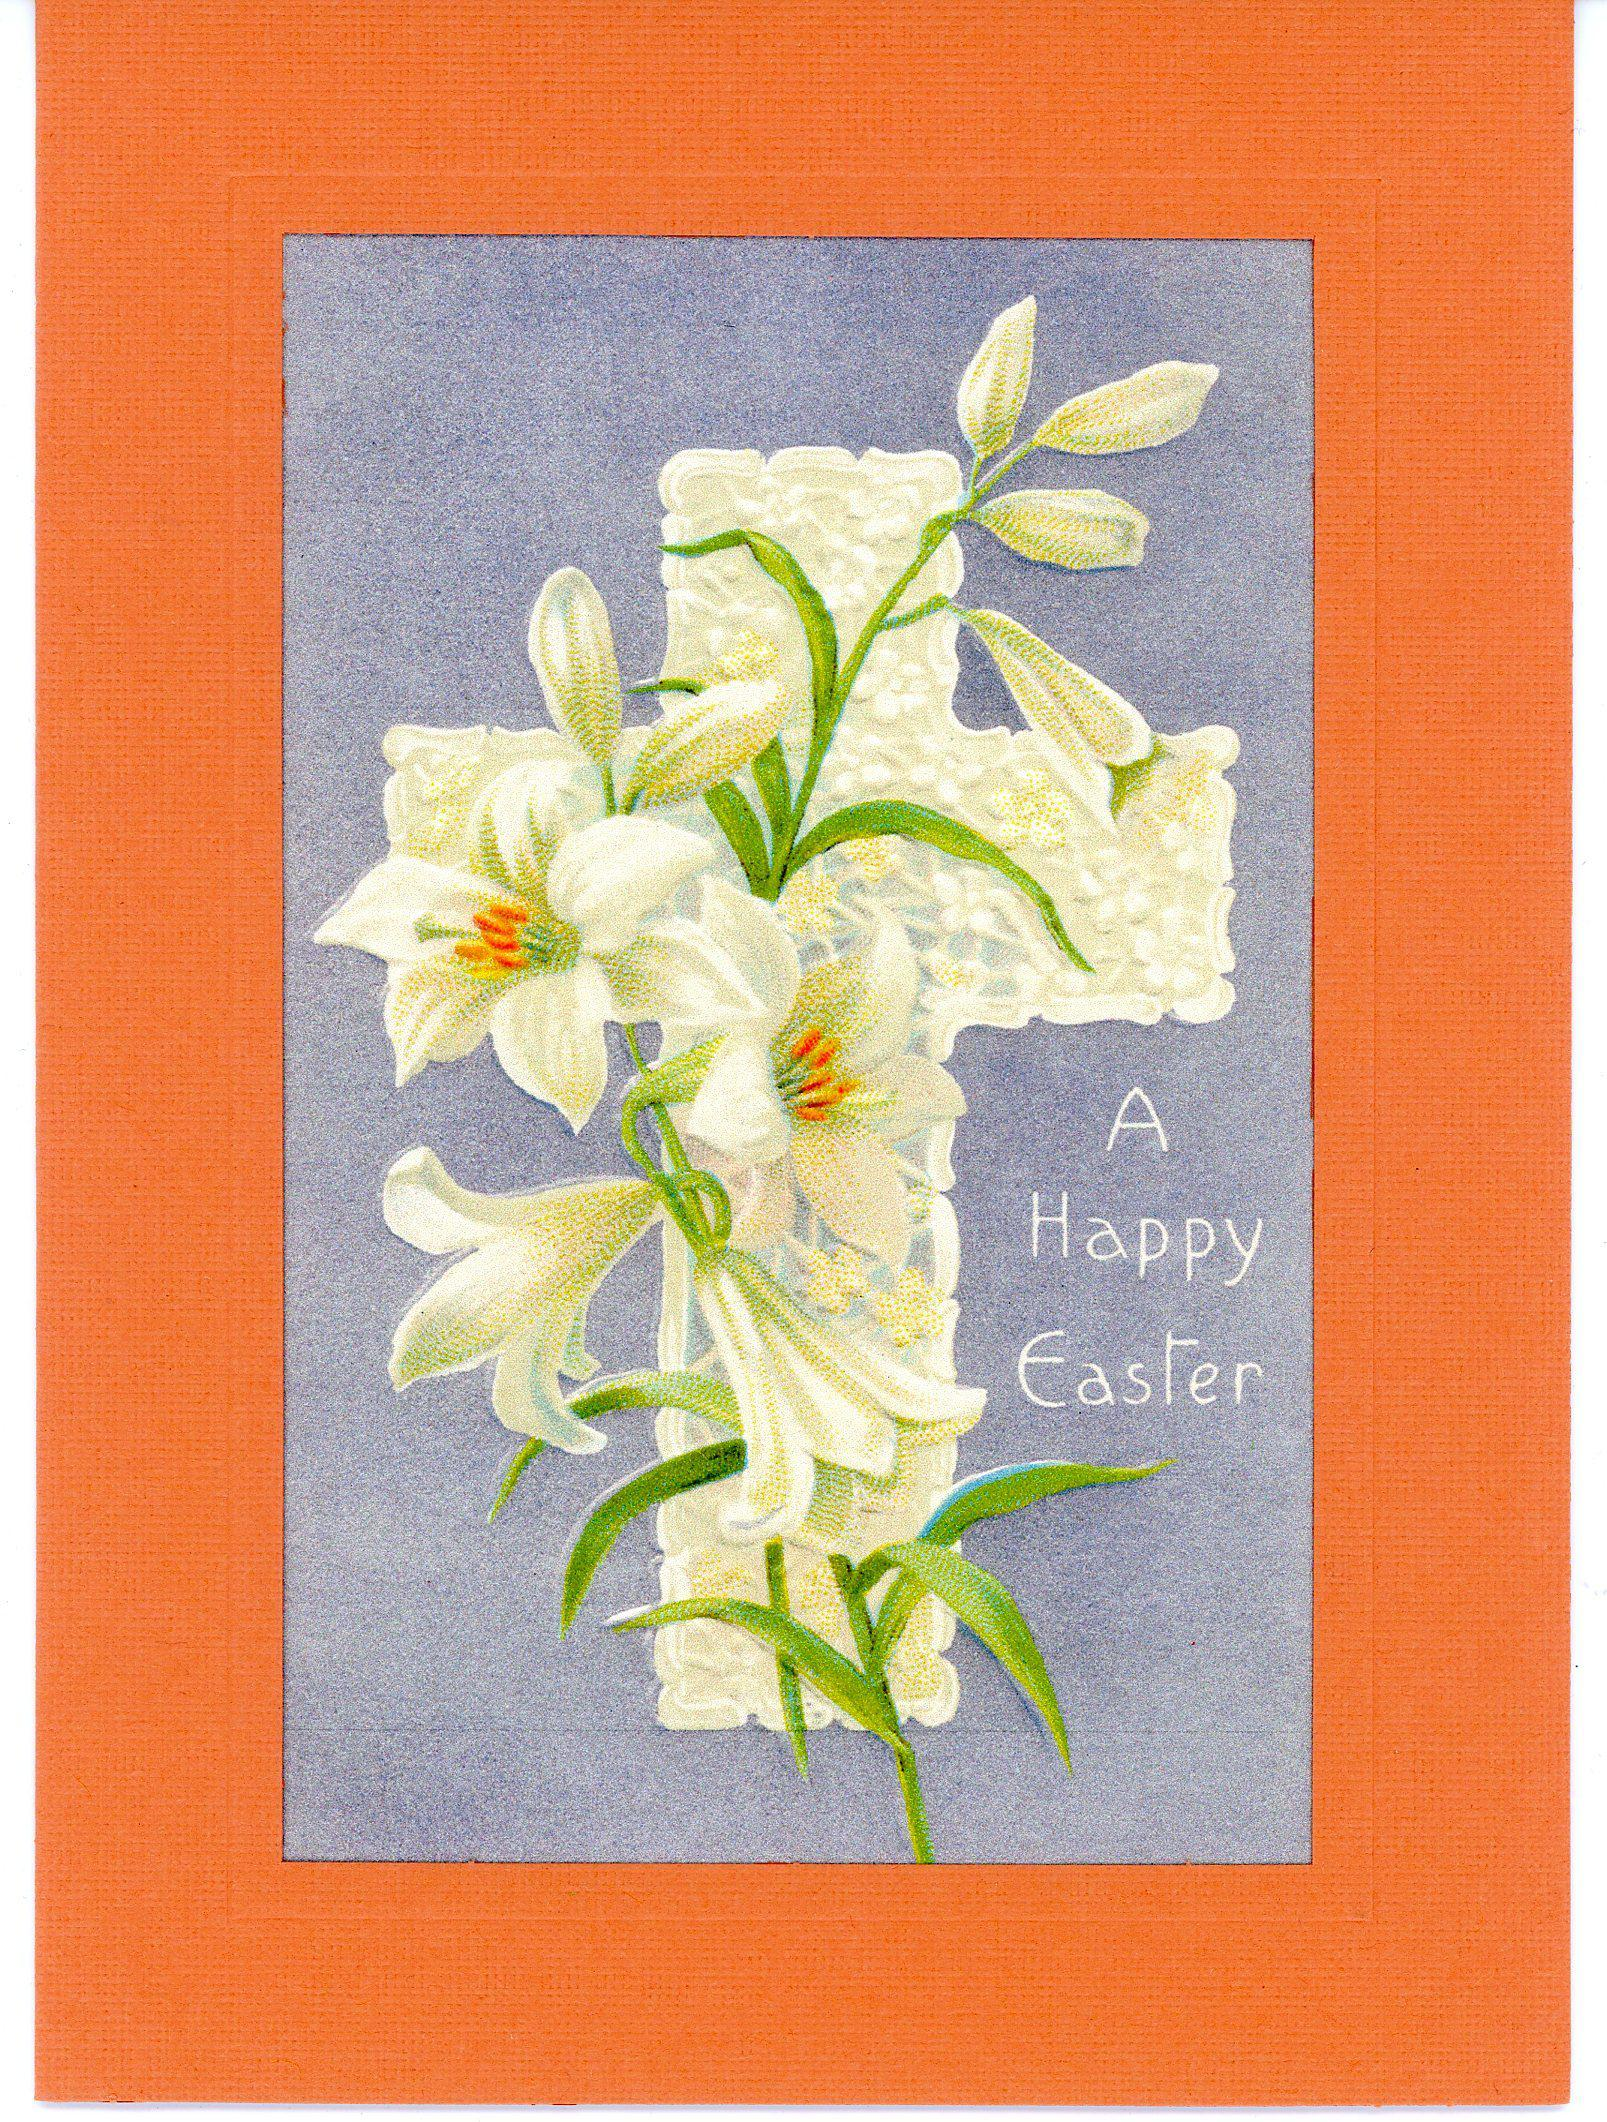 A Happy Easter-Greetings from the Past-Plymouth Cards